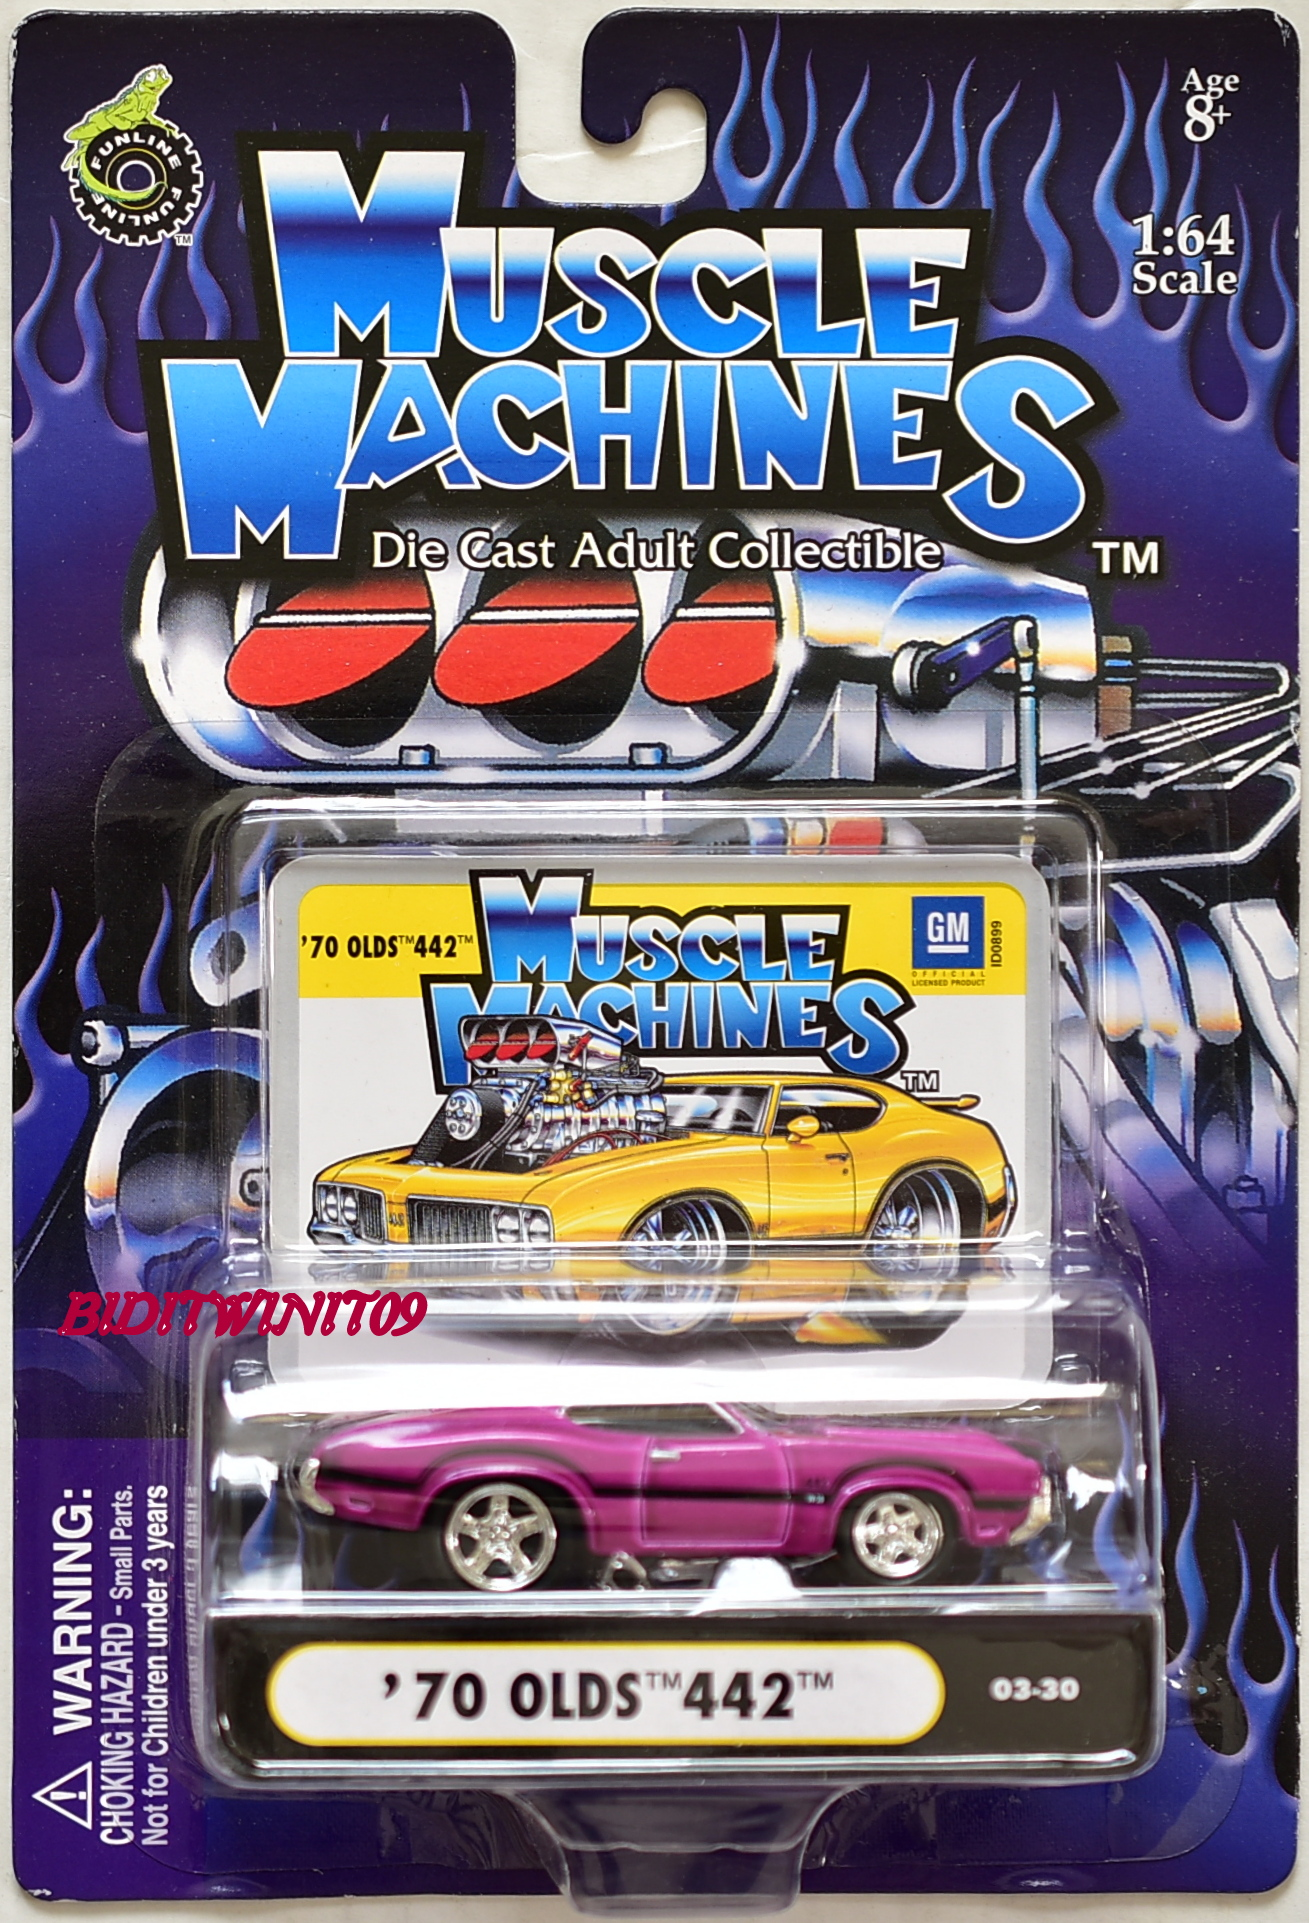 MUSCLE MACHINES '70 OLDS 442 03-30 PURPLE SCALE 1:64 E+